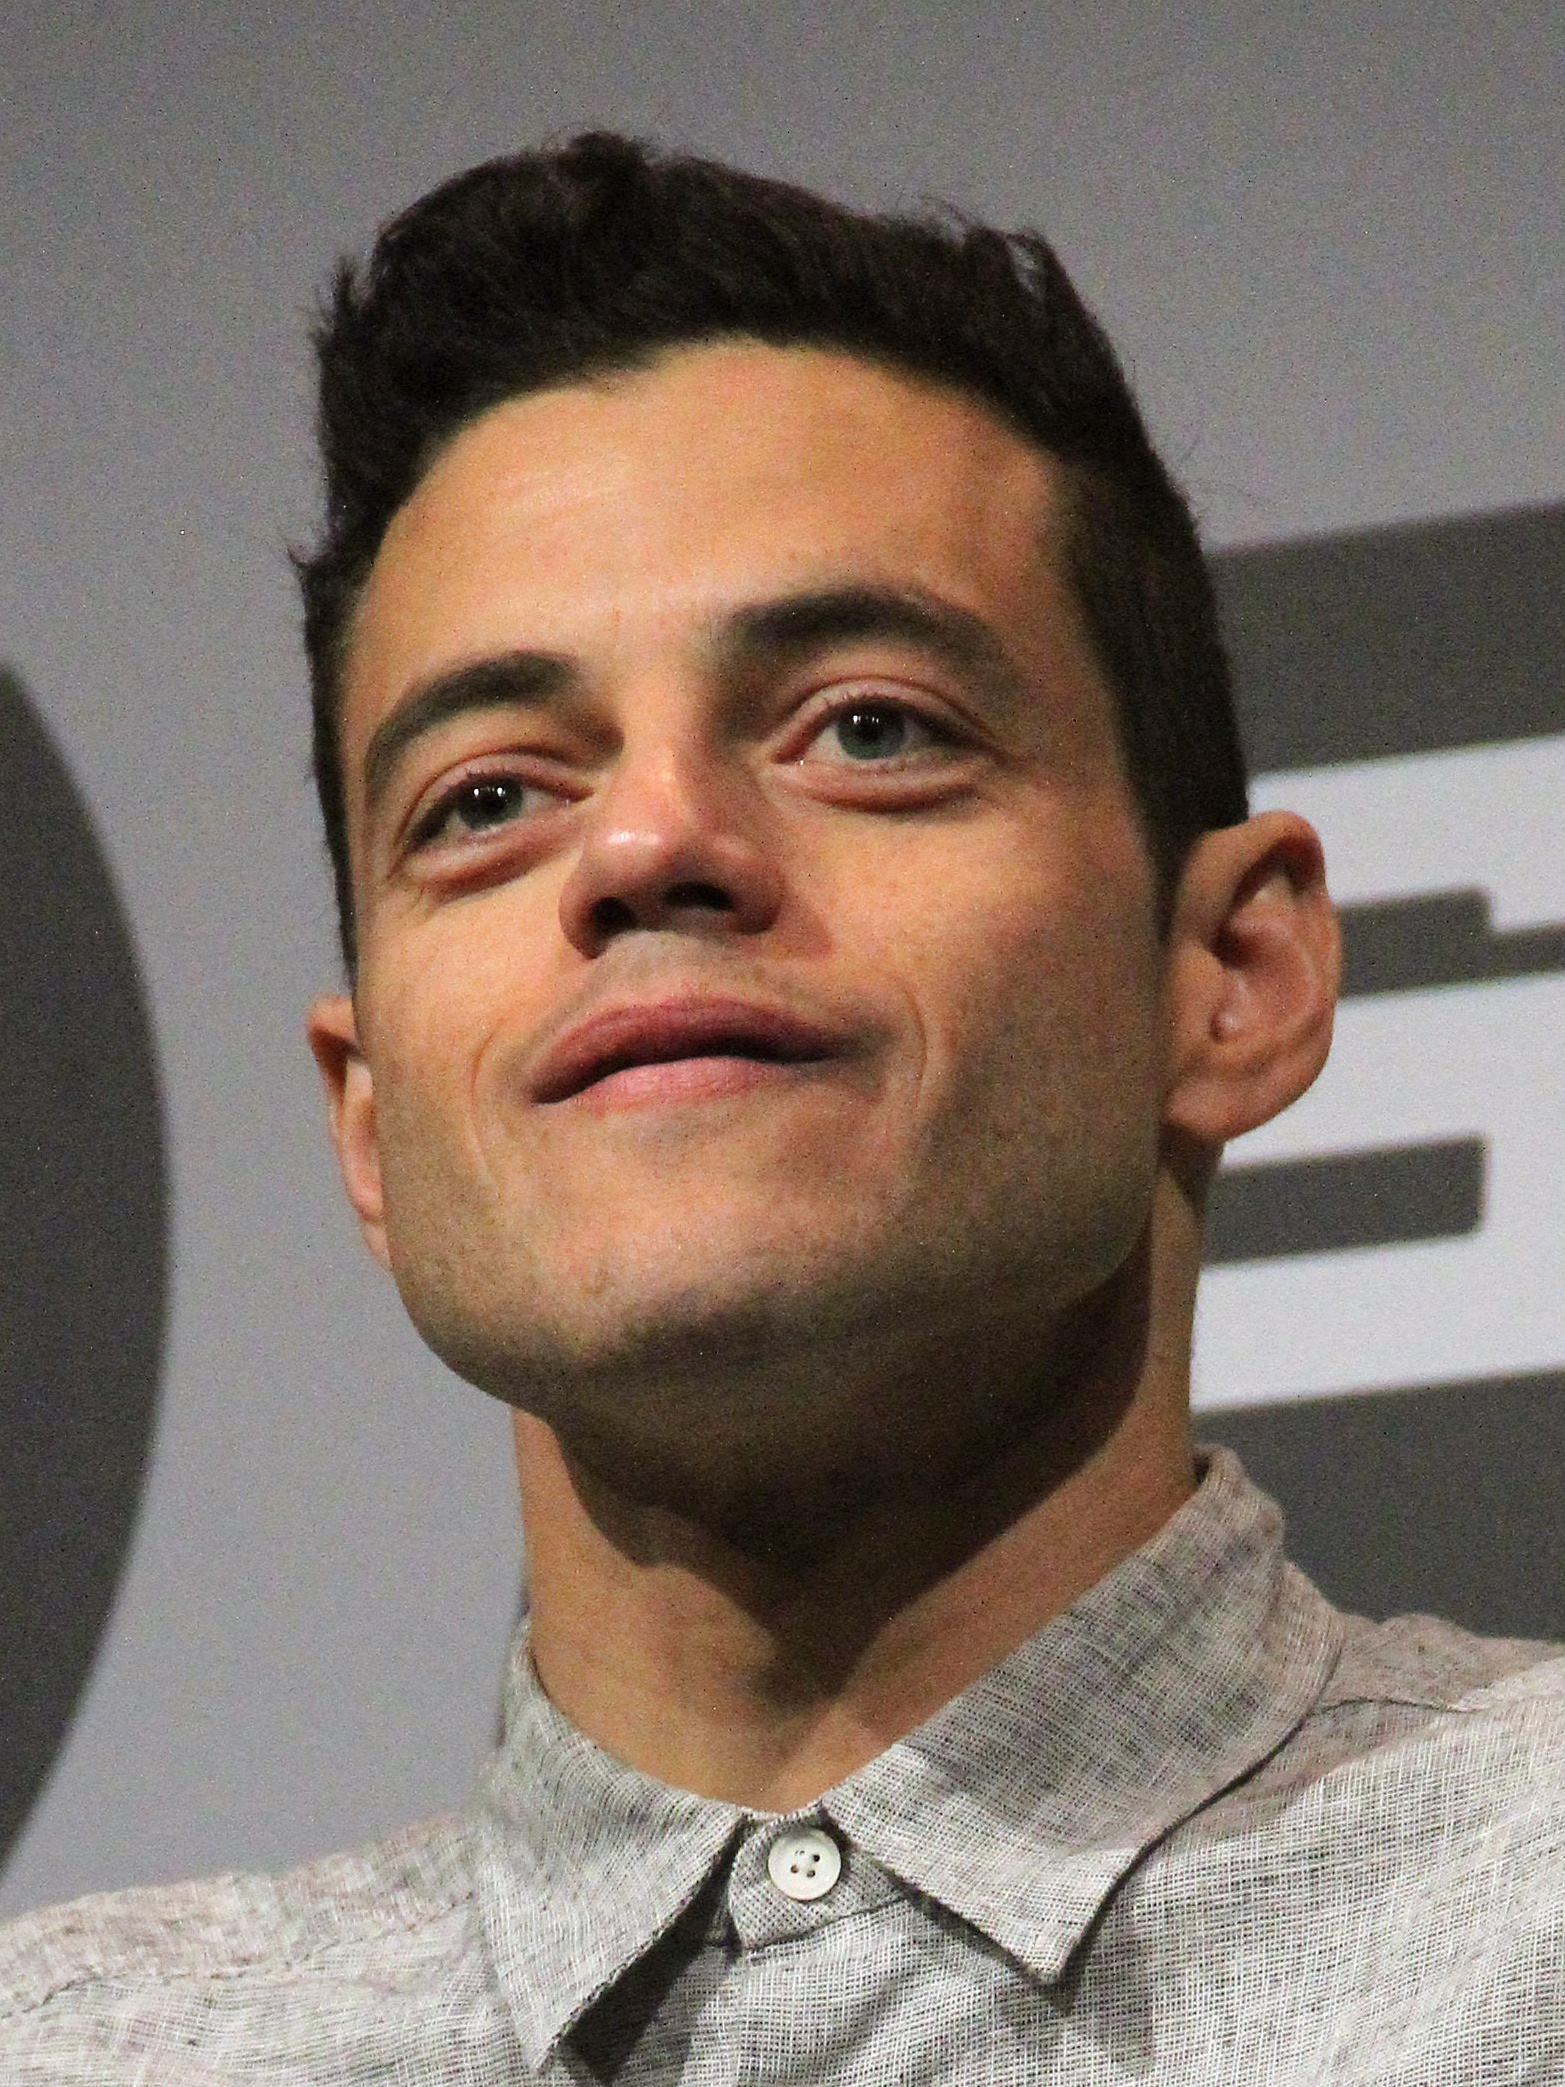 The 37-year old son of father (?) and mother(?) Rami Malek in 2018 photo. Rami Malek earned a  million dollar salary - leaving the net worth at 2 million in 2018